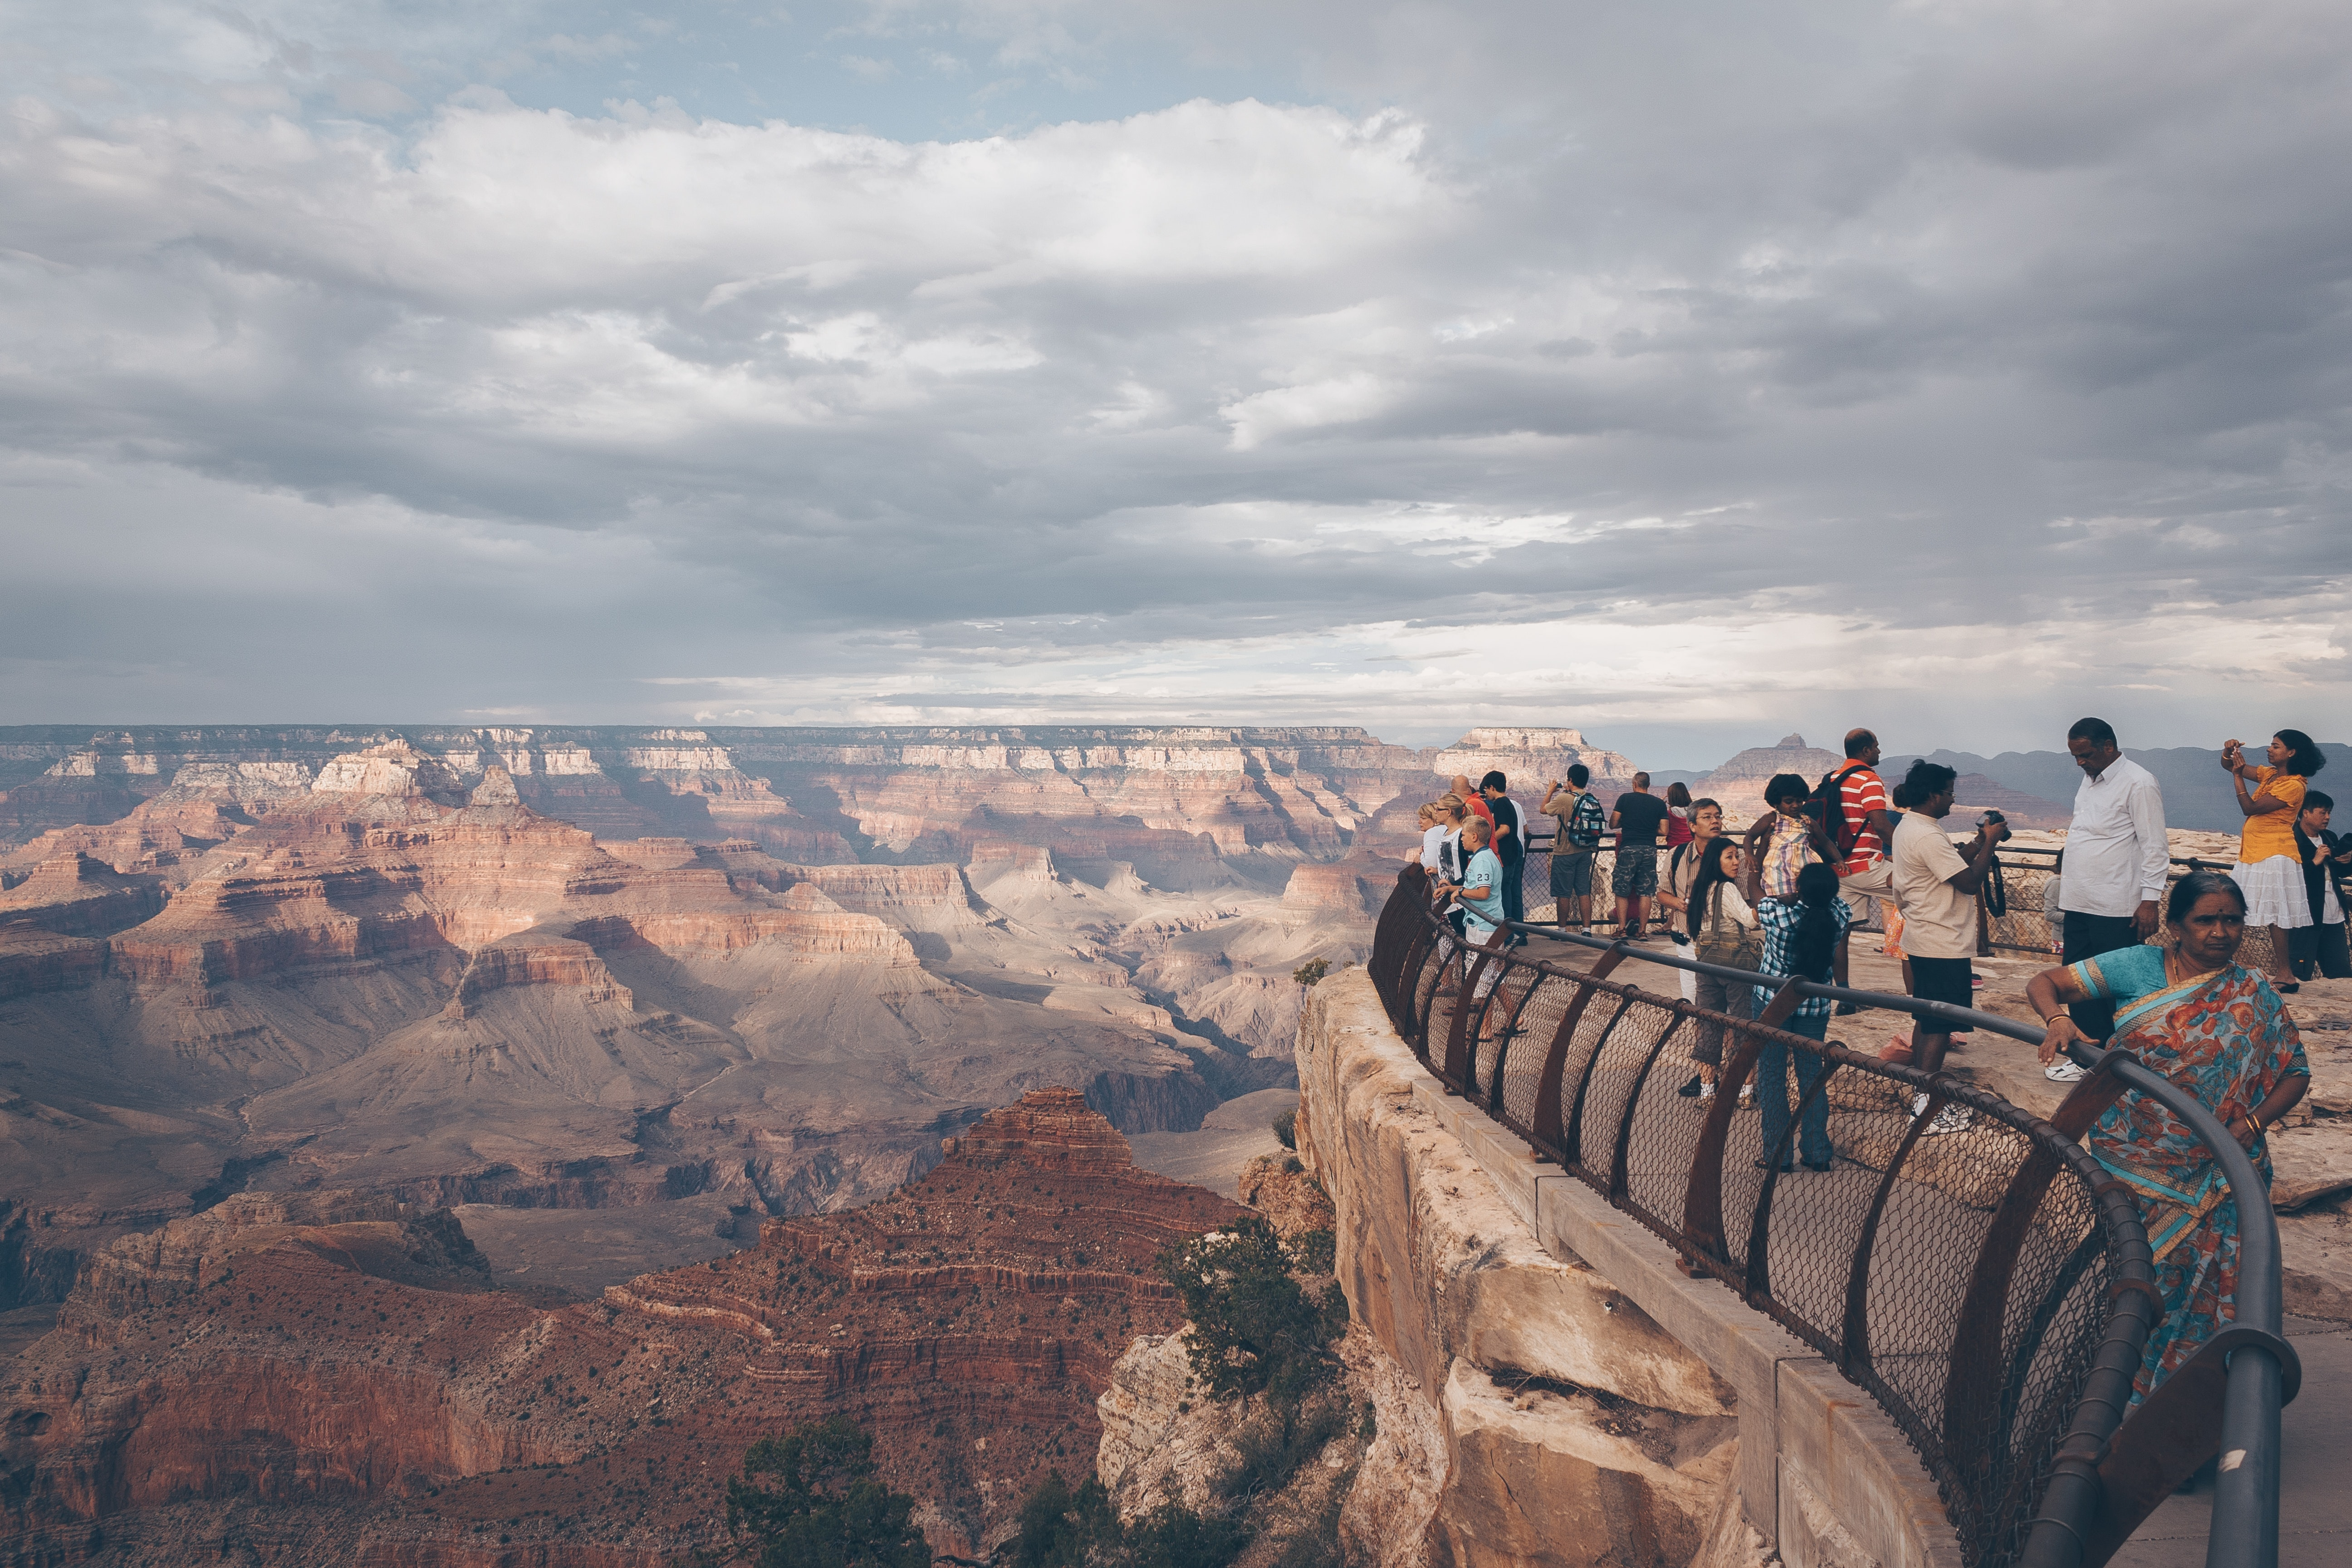 group of people standing at the top of cliff with railing